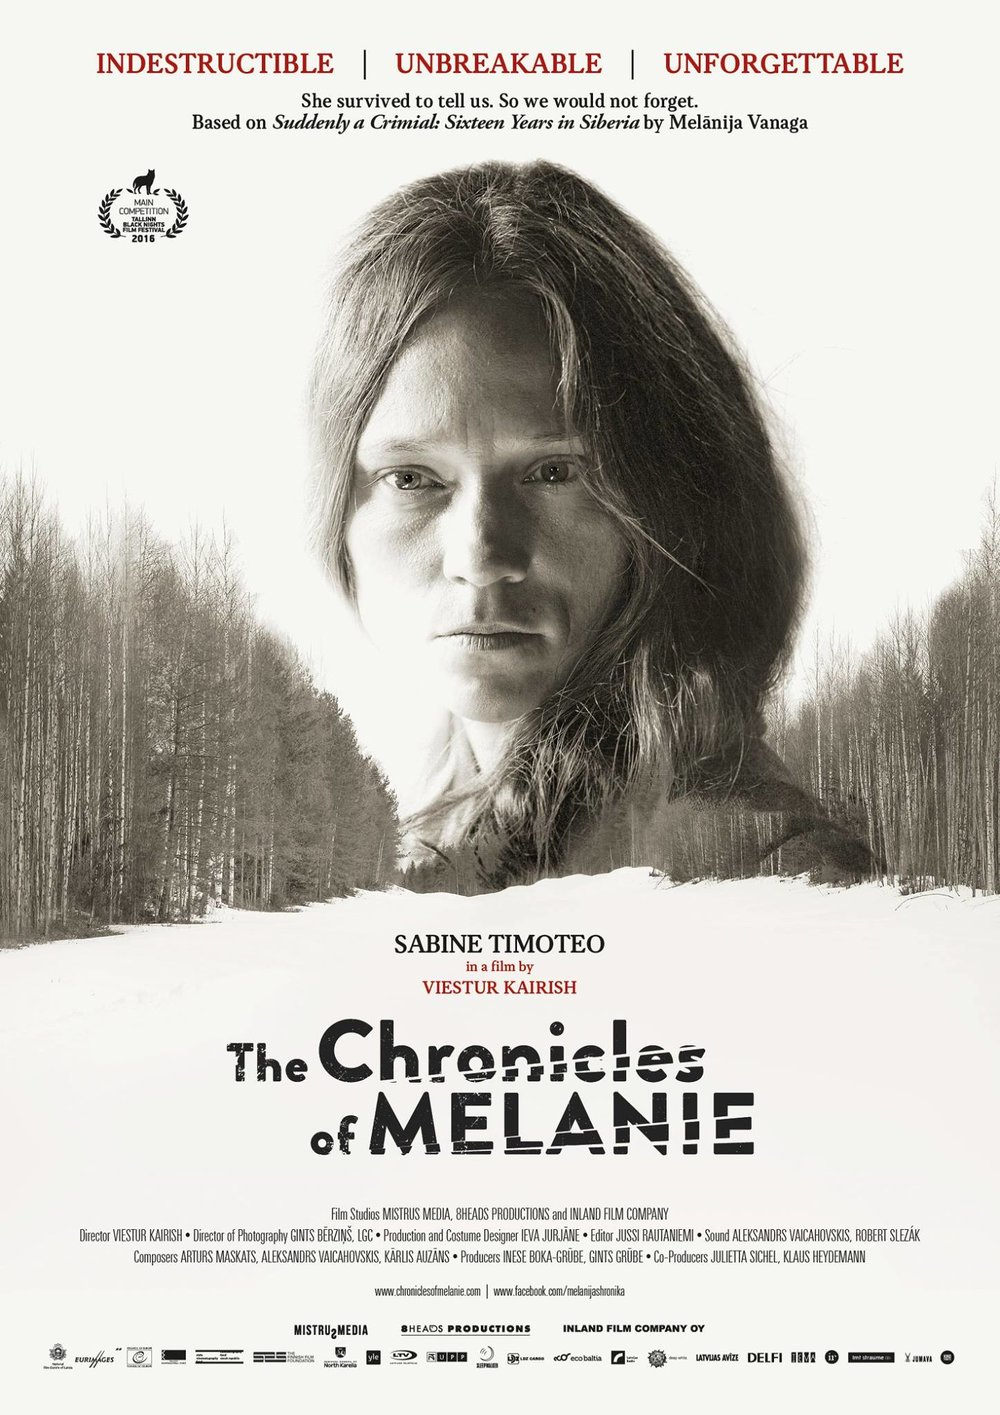 Chronicles of Melanie dir. Viesturs Kairiss Mistrus media, Inland Film Company TBA 2016, (TEMP IMAGE)